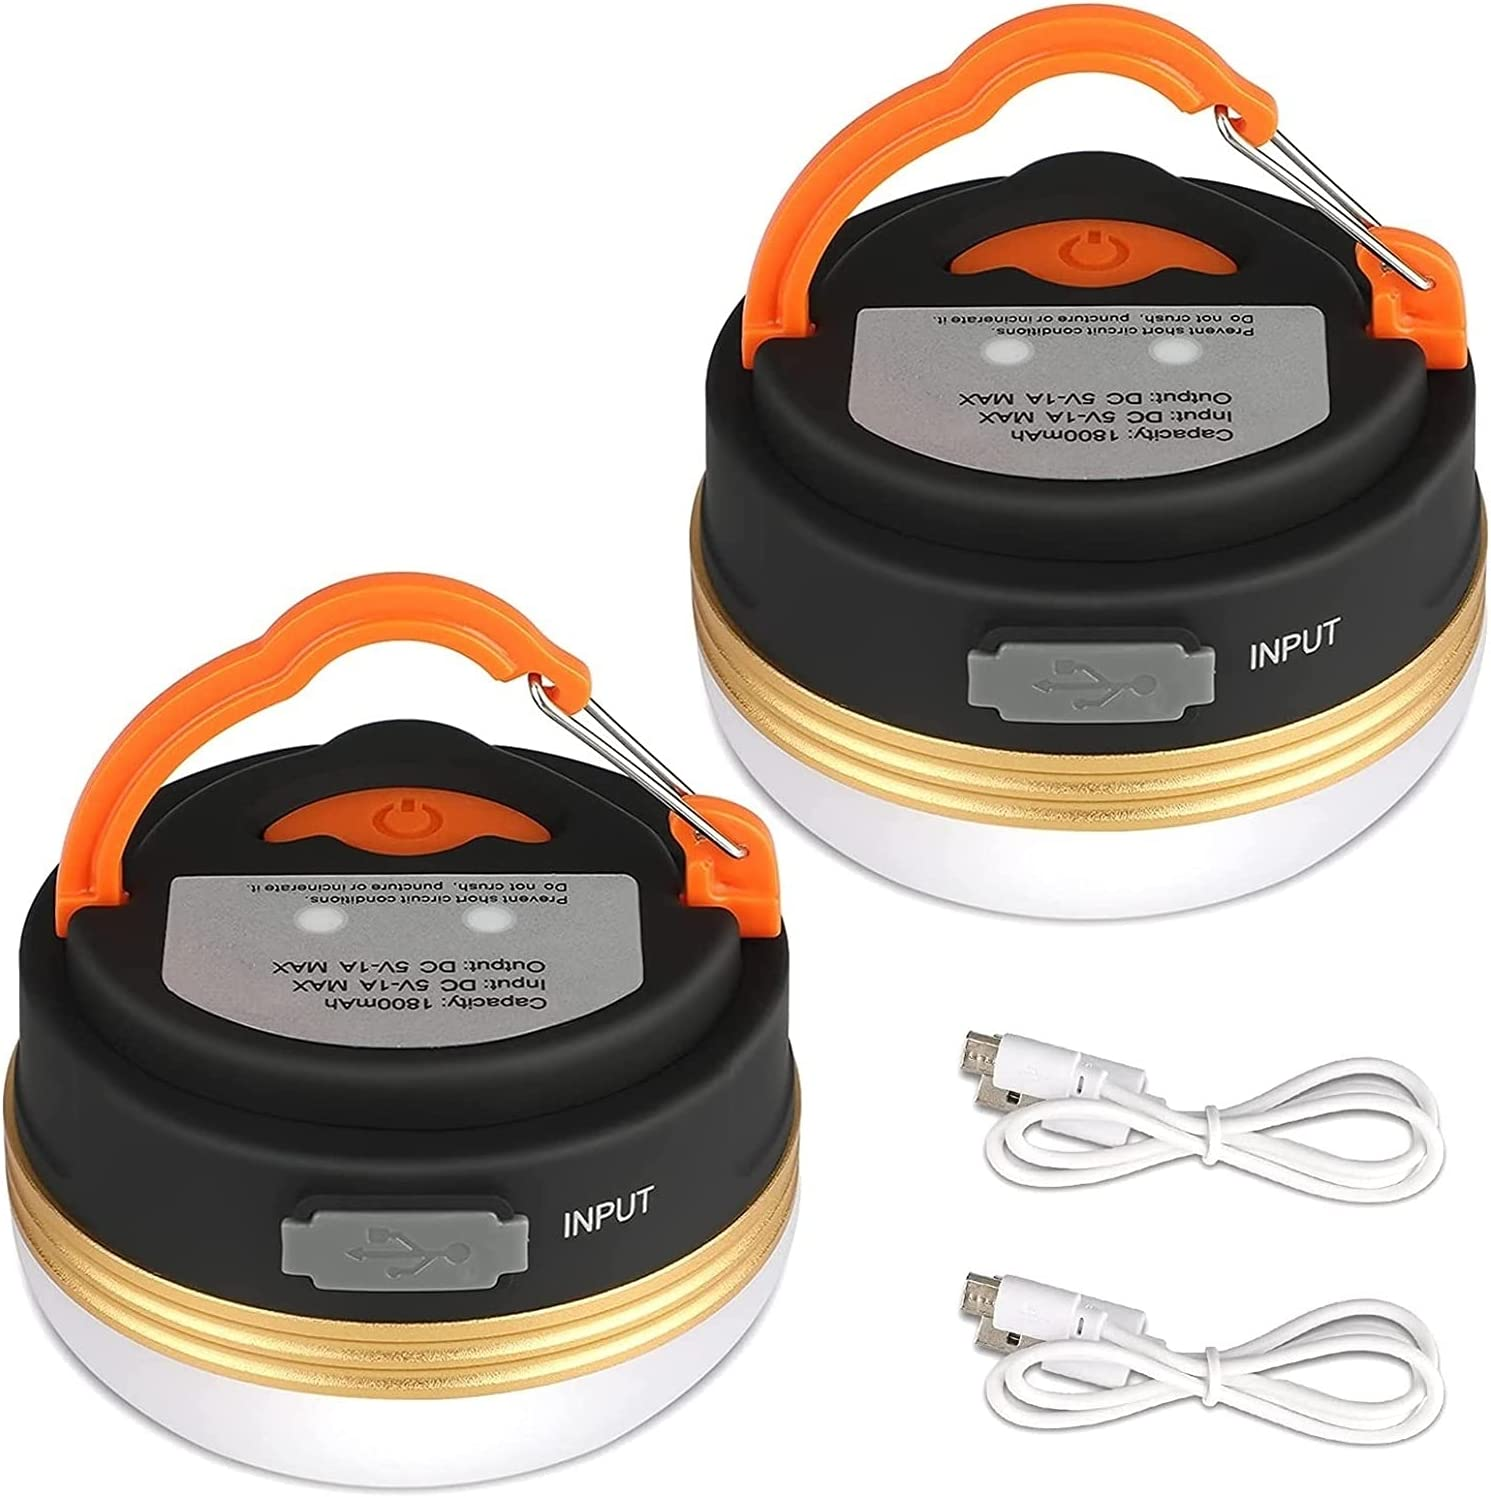 Camping Lights 2 security Pcs Tent Ultra-Cheap Deals USB Rechargeable Lante